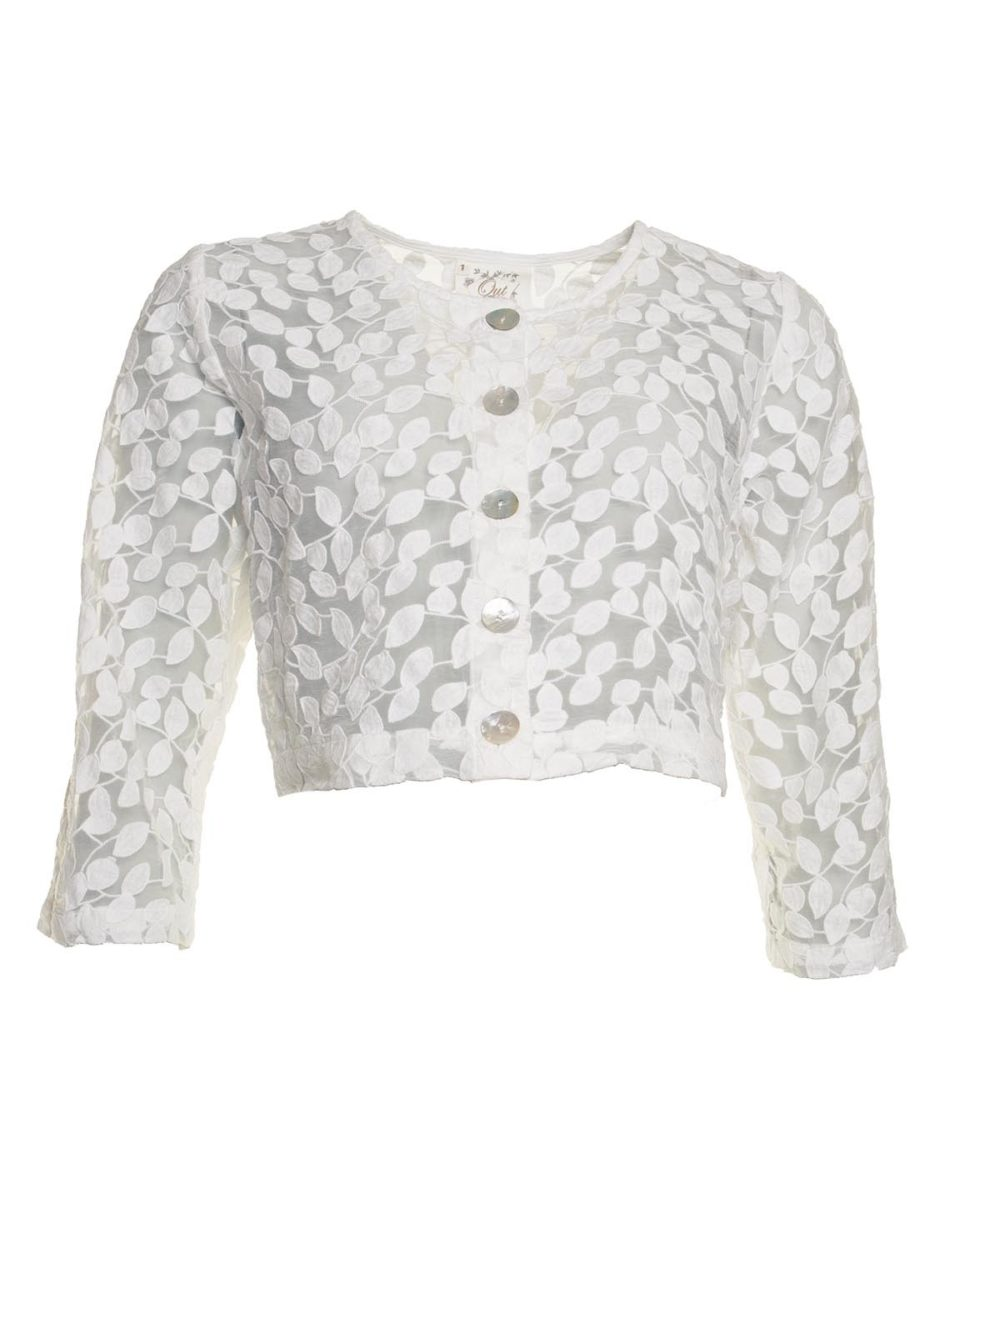 Leaf Embroidery Jacket Out of Xile Katie Kerr Women's Clothing